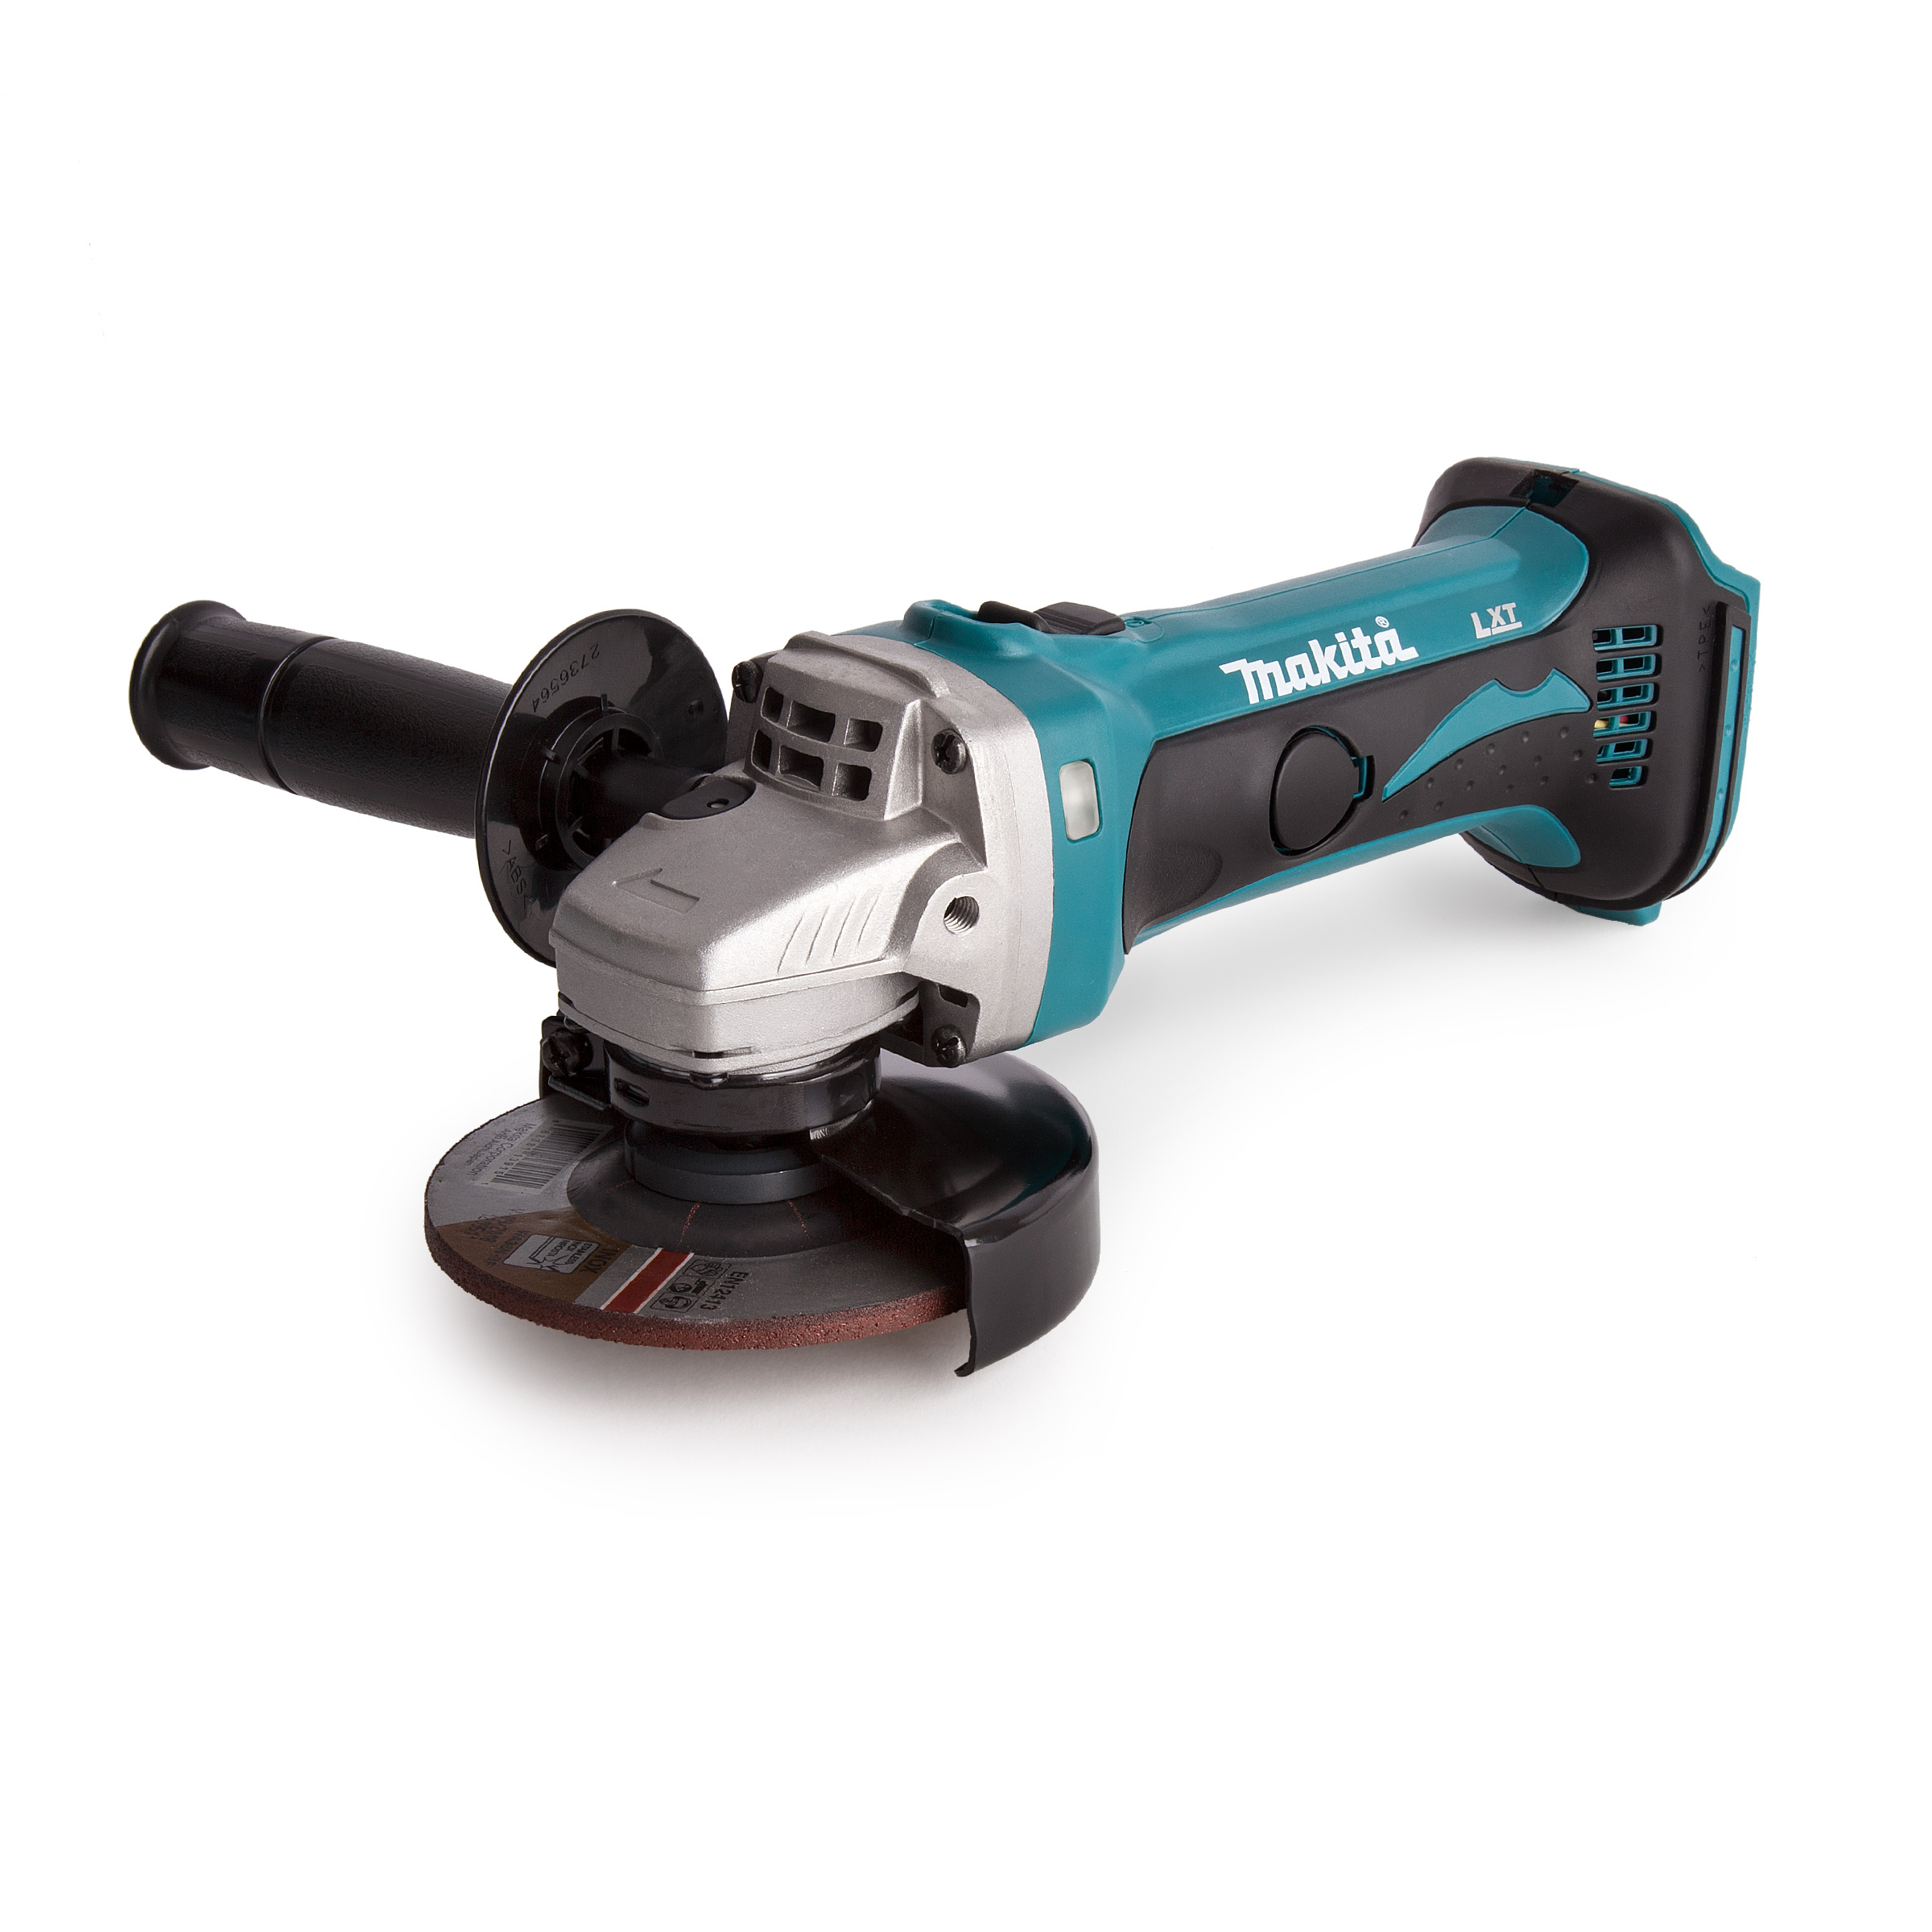 Makita body only tools